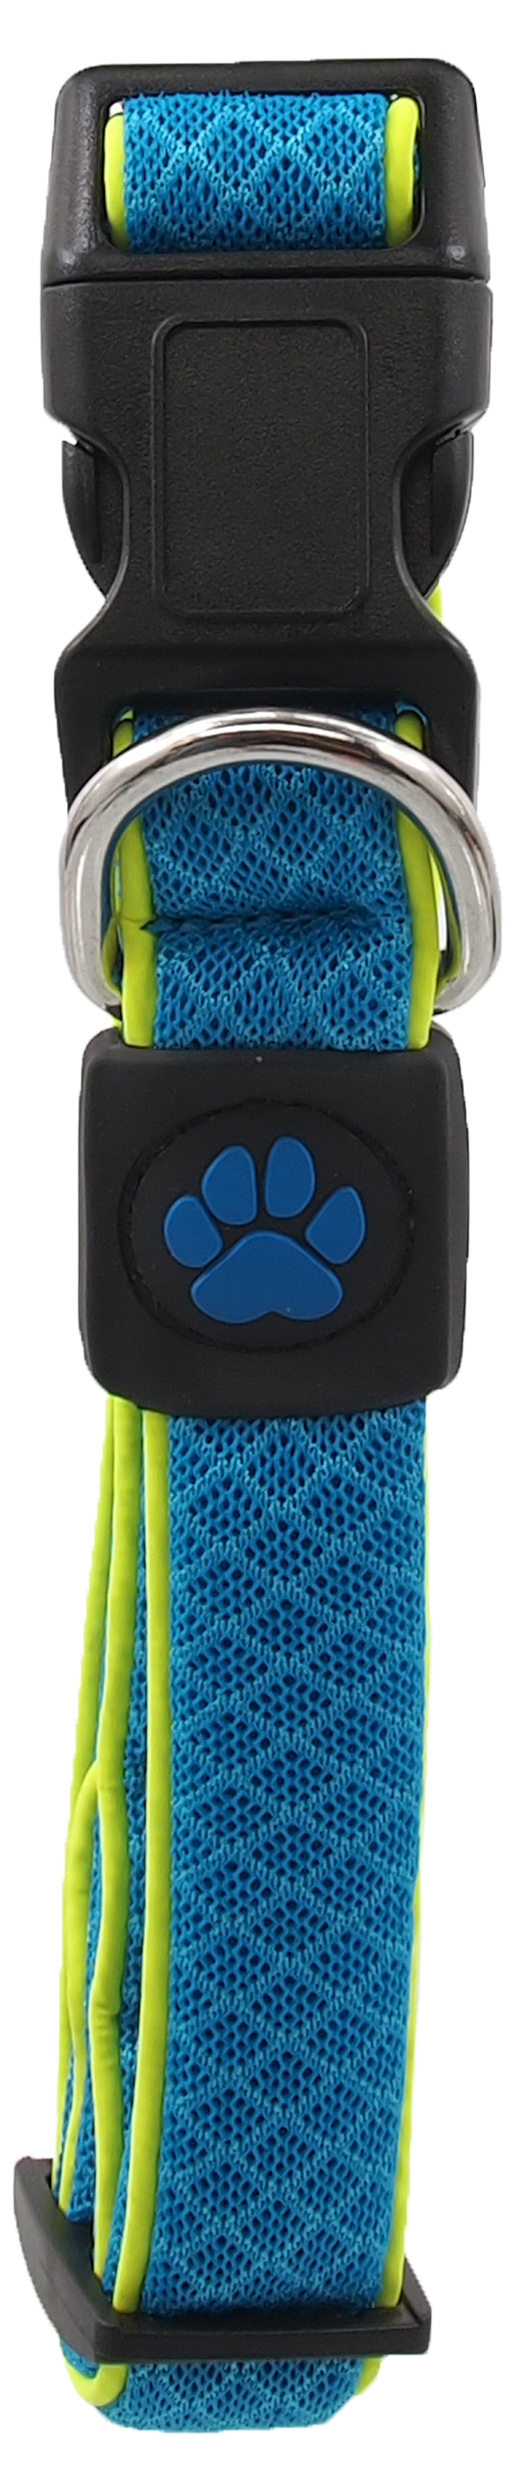 Dog Fantasy Obojek Active Dog Fluffy Reflective M modrý 2,5x35-51cm